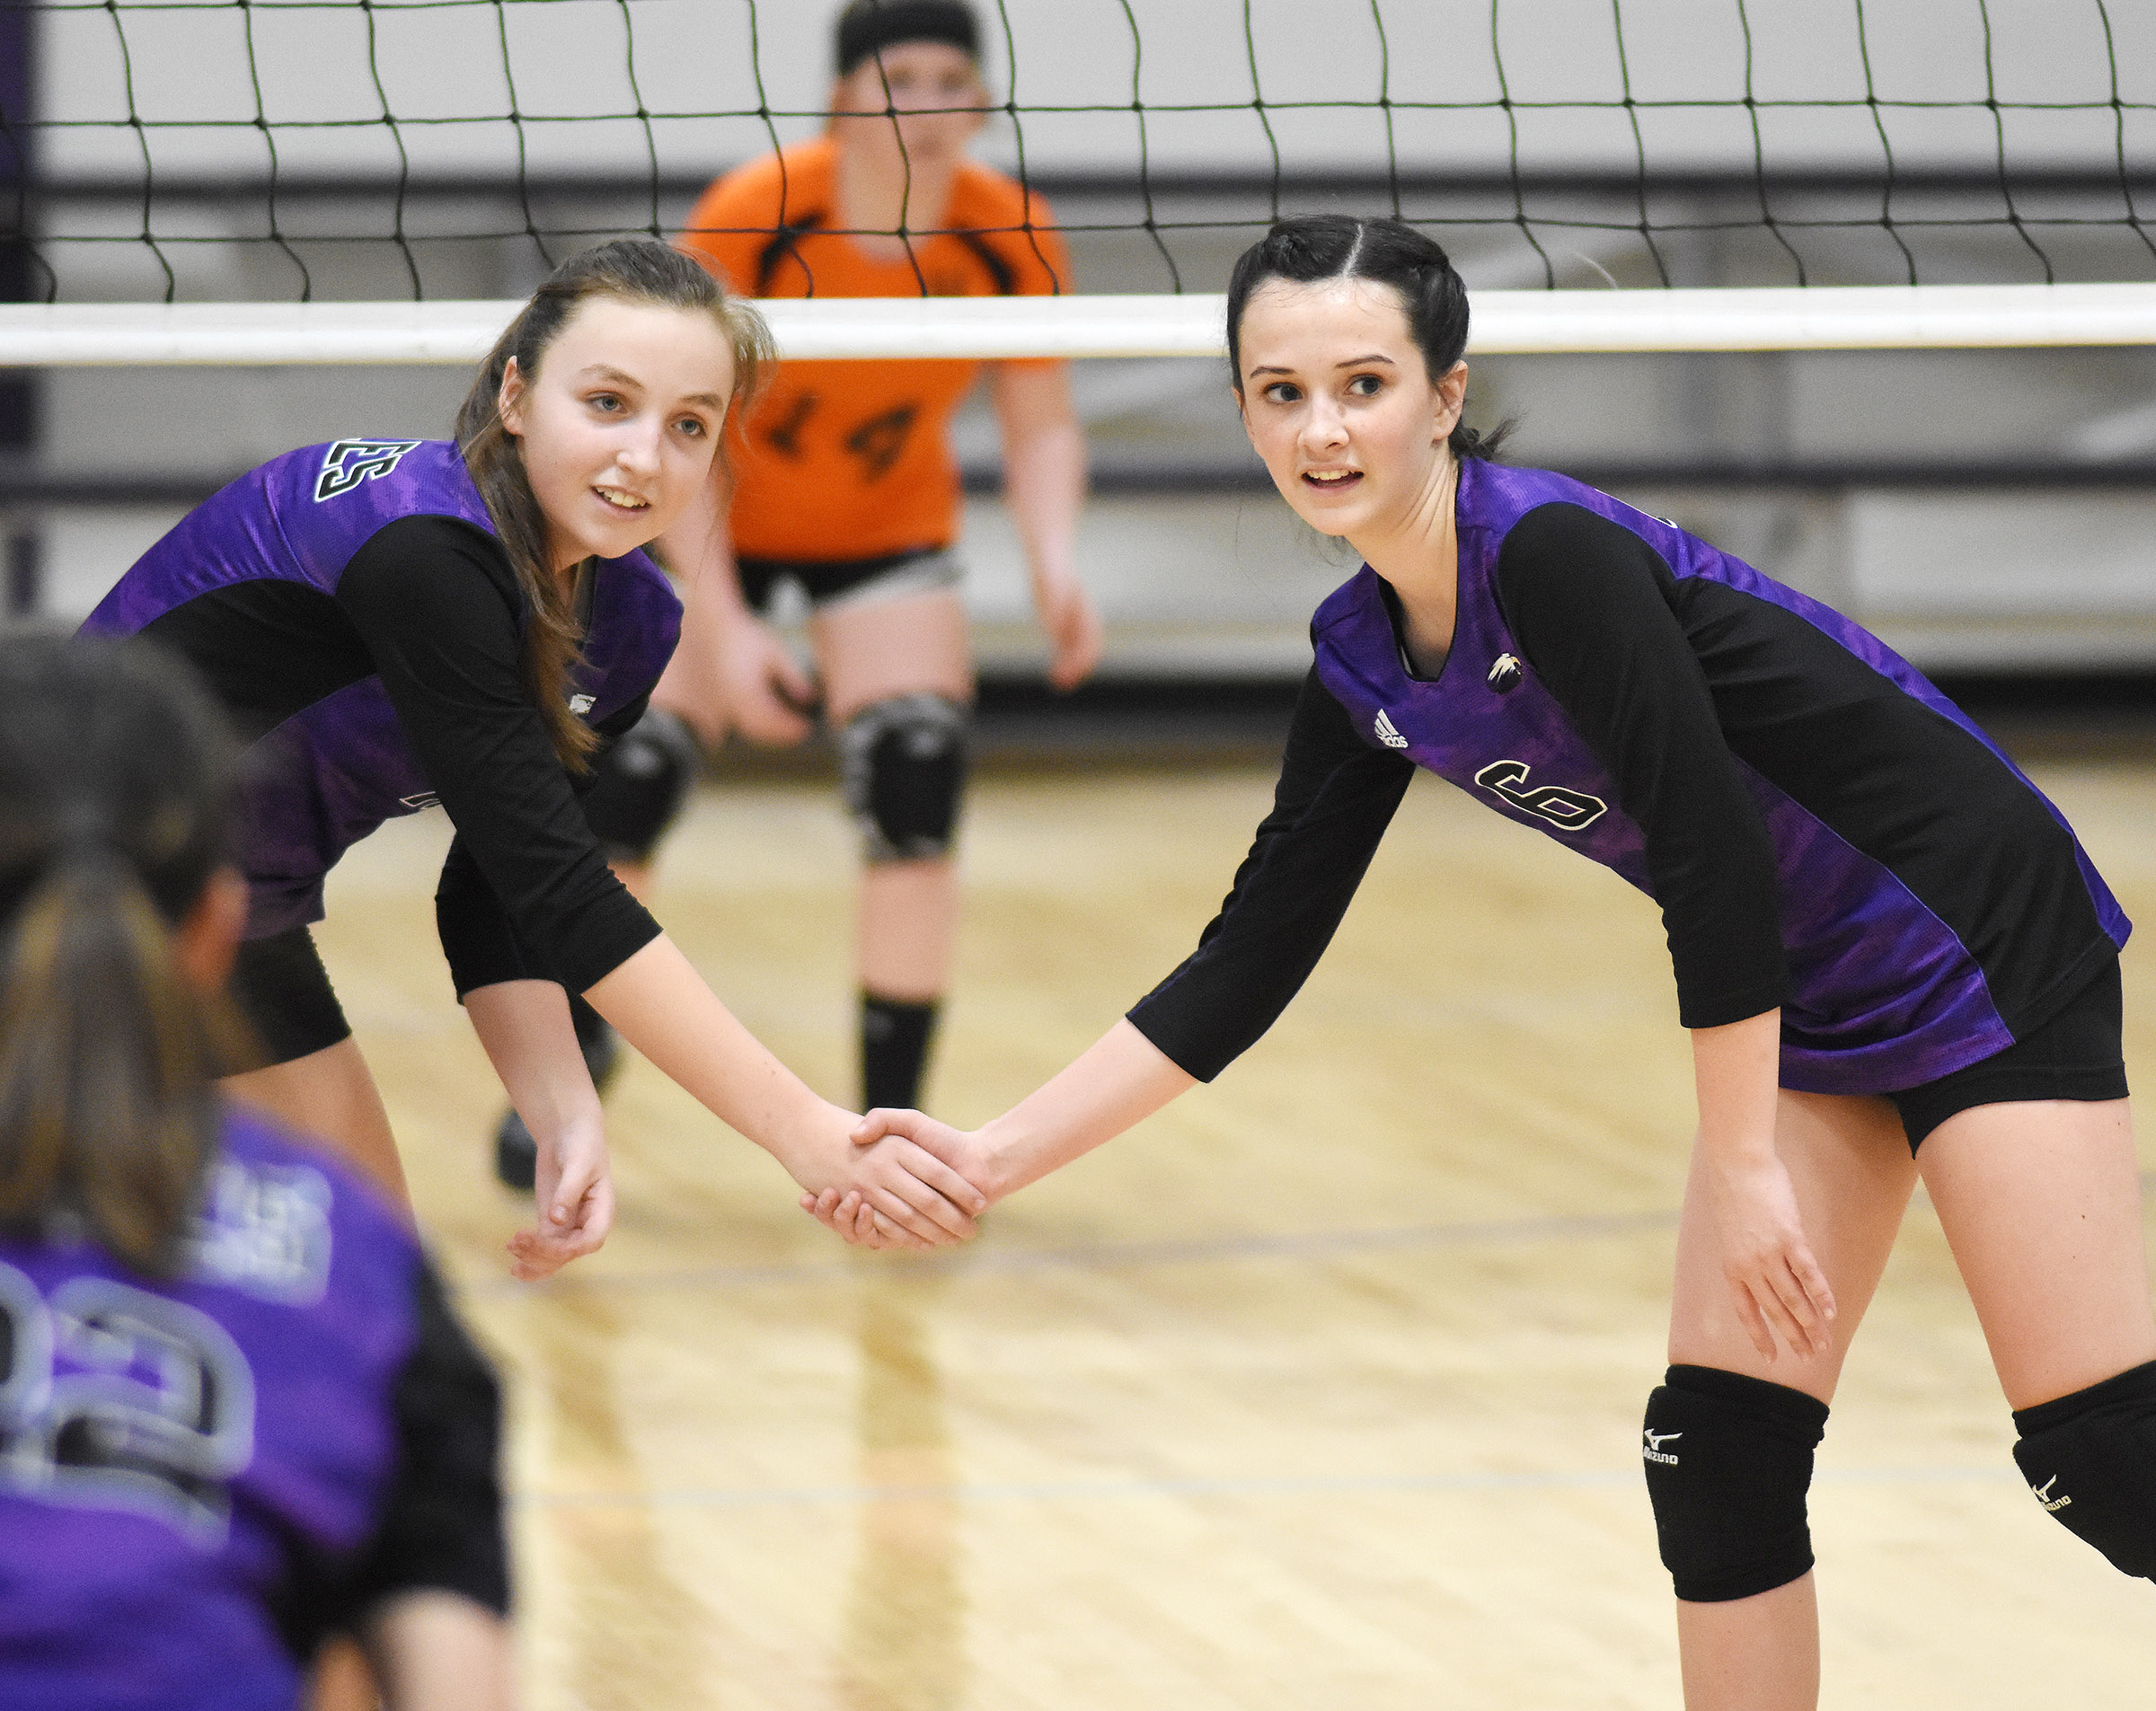 CMS eighth-grader Lainey Watson, at left, and Sarah Adkins wait for the serve.